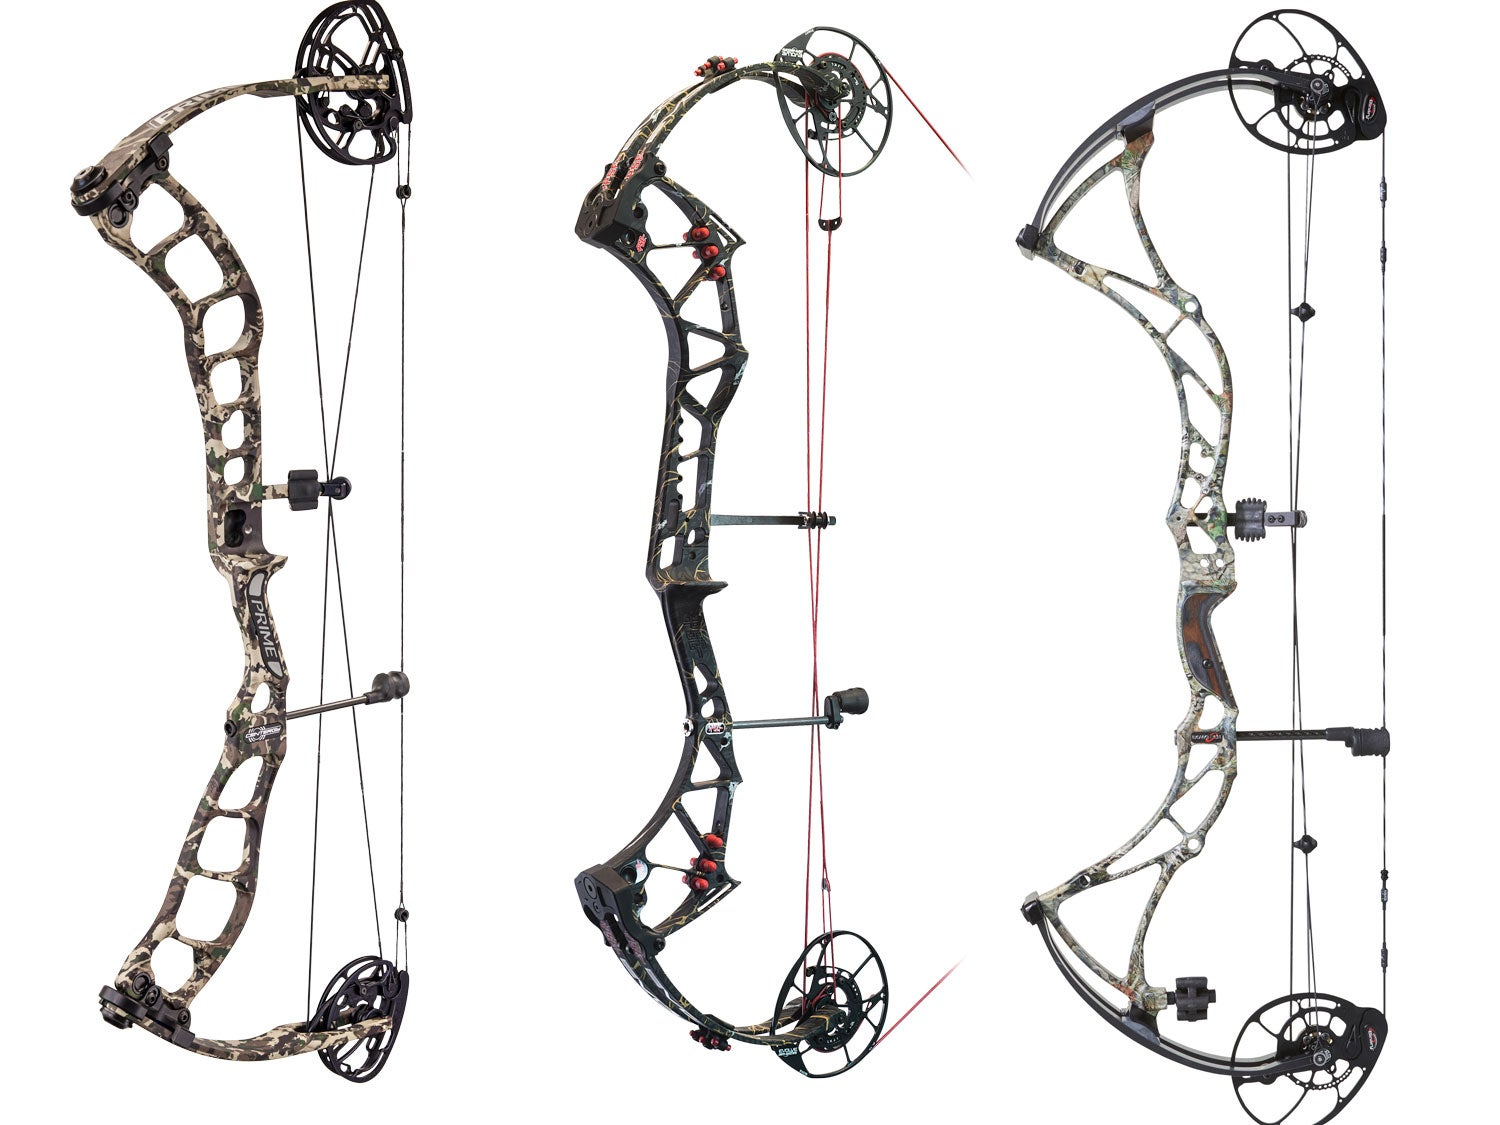 Nine Best New Bows for 2017